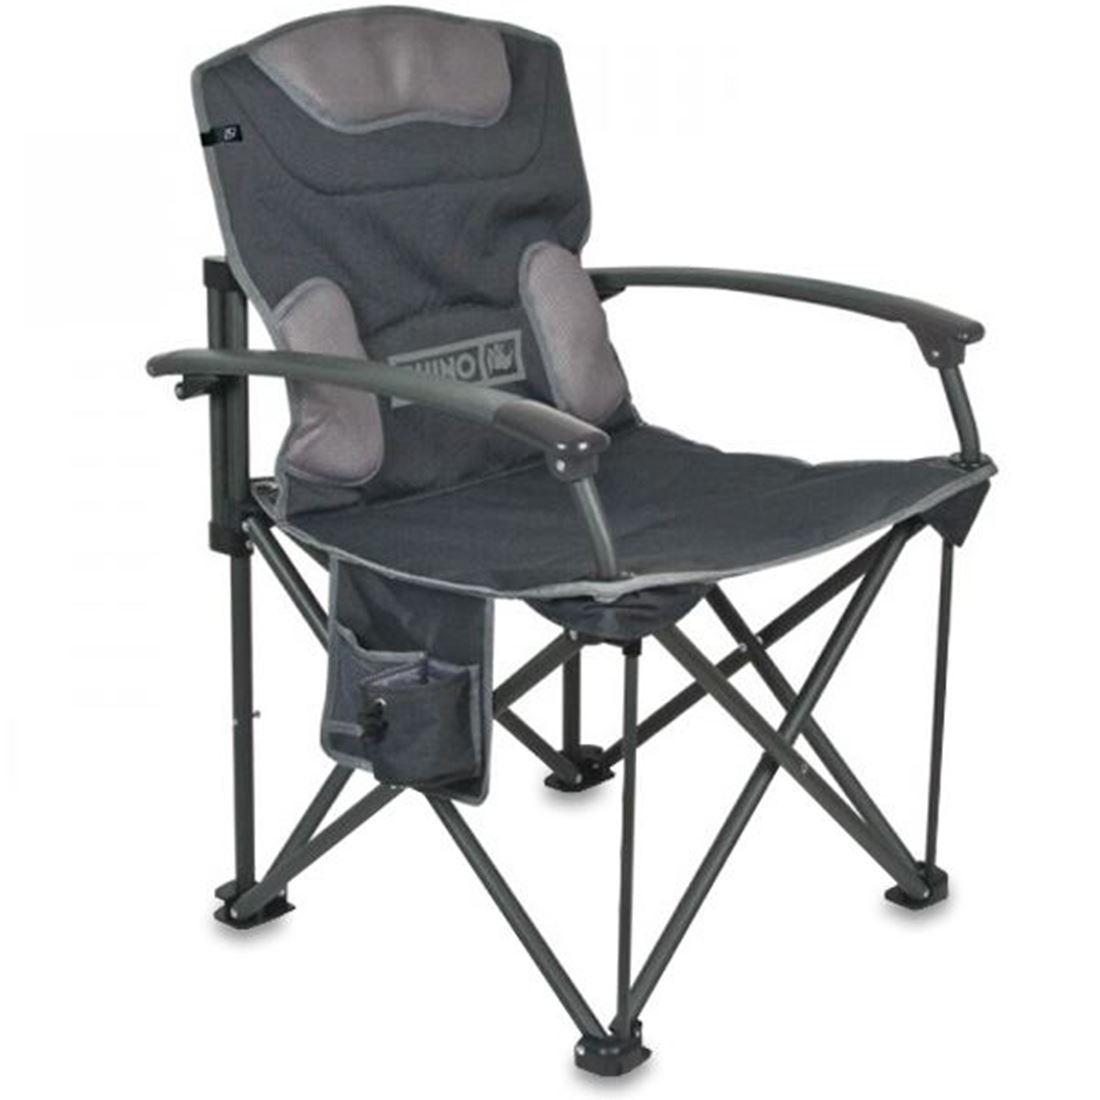 Picture of Companion Rhino Deluxe with Armrest Chair